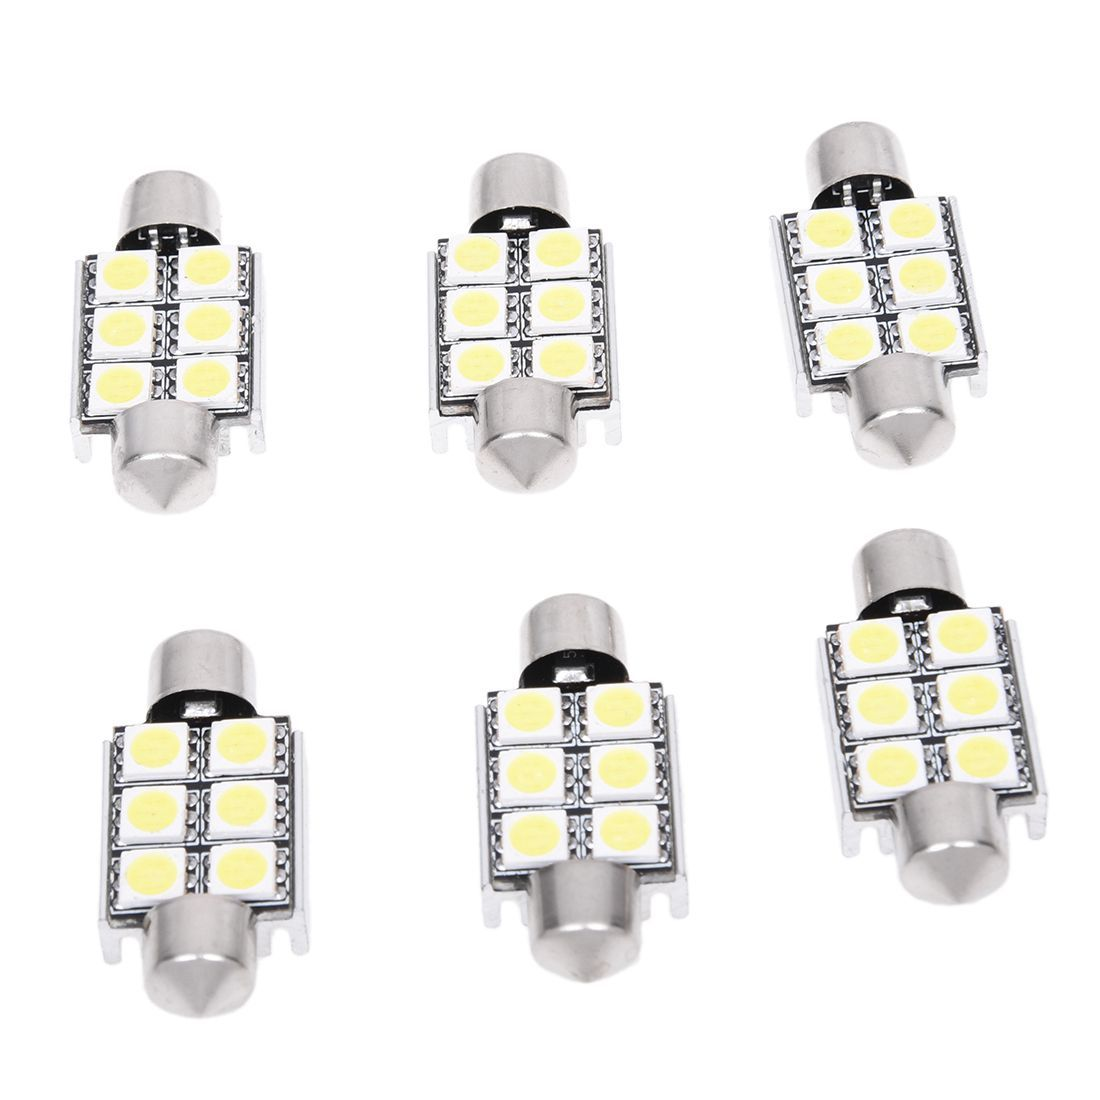 Promotion! 6x 36MM Can bus 6SMD 5050 LED License Plate Festoon Dome Bulb Light White